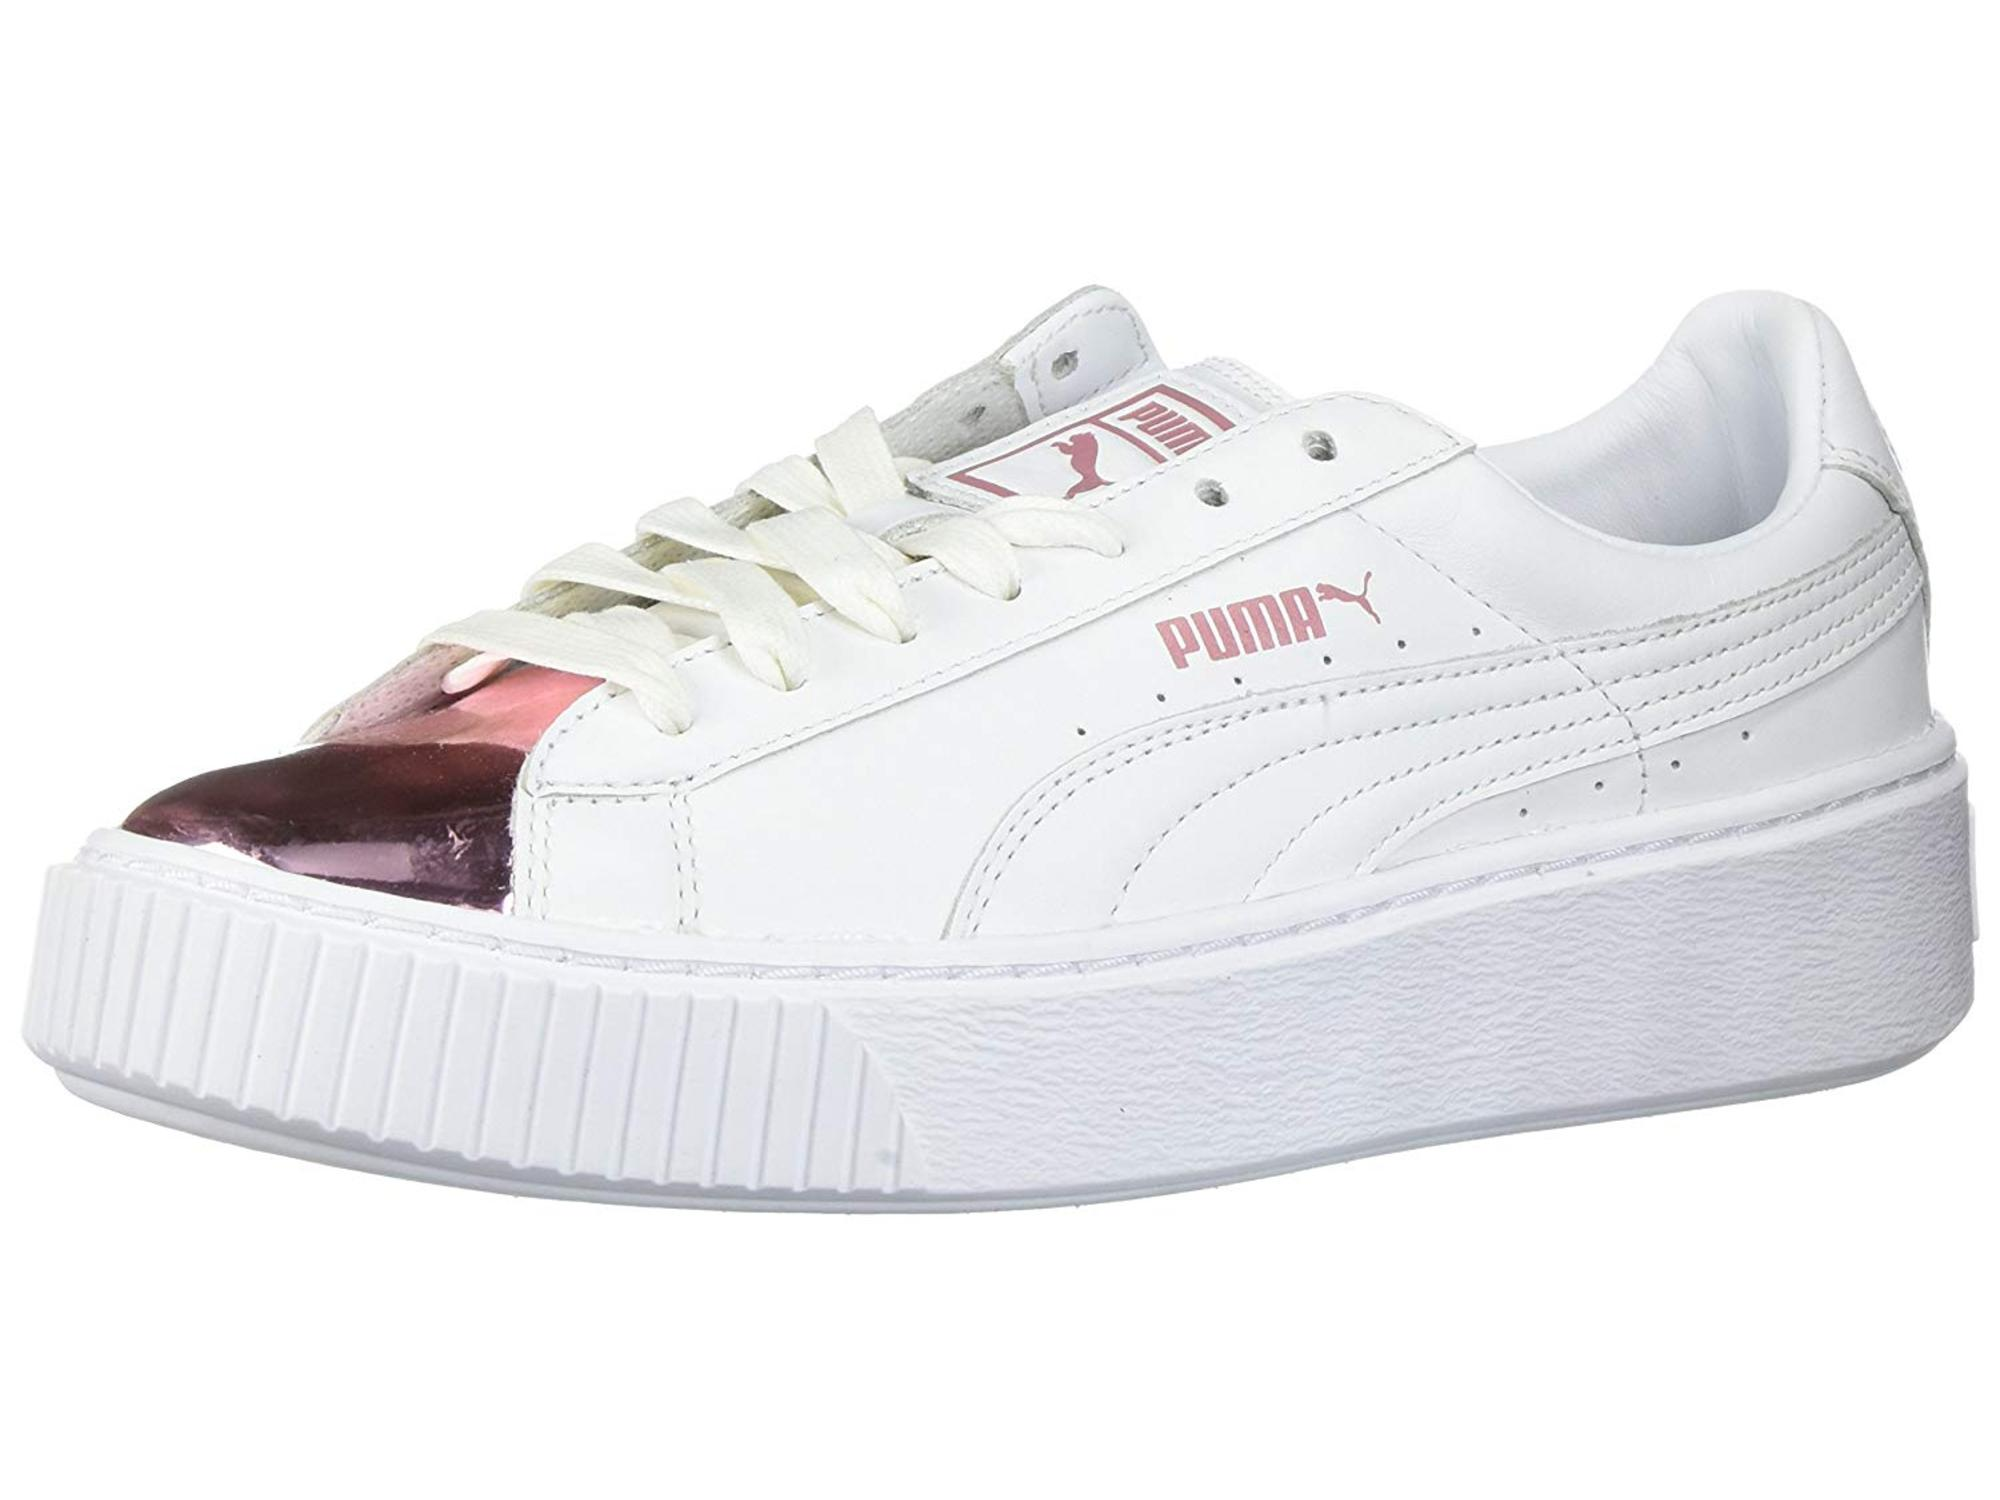 aad77410ef3e PUMA Womens basket platiorm metallic Low Top Lace Up Fashion